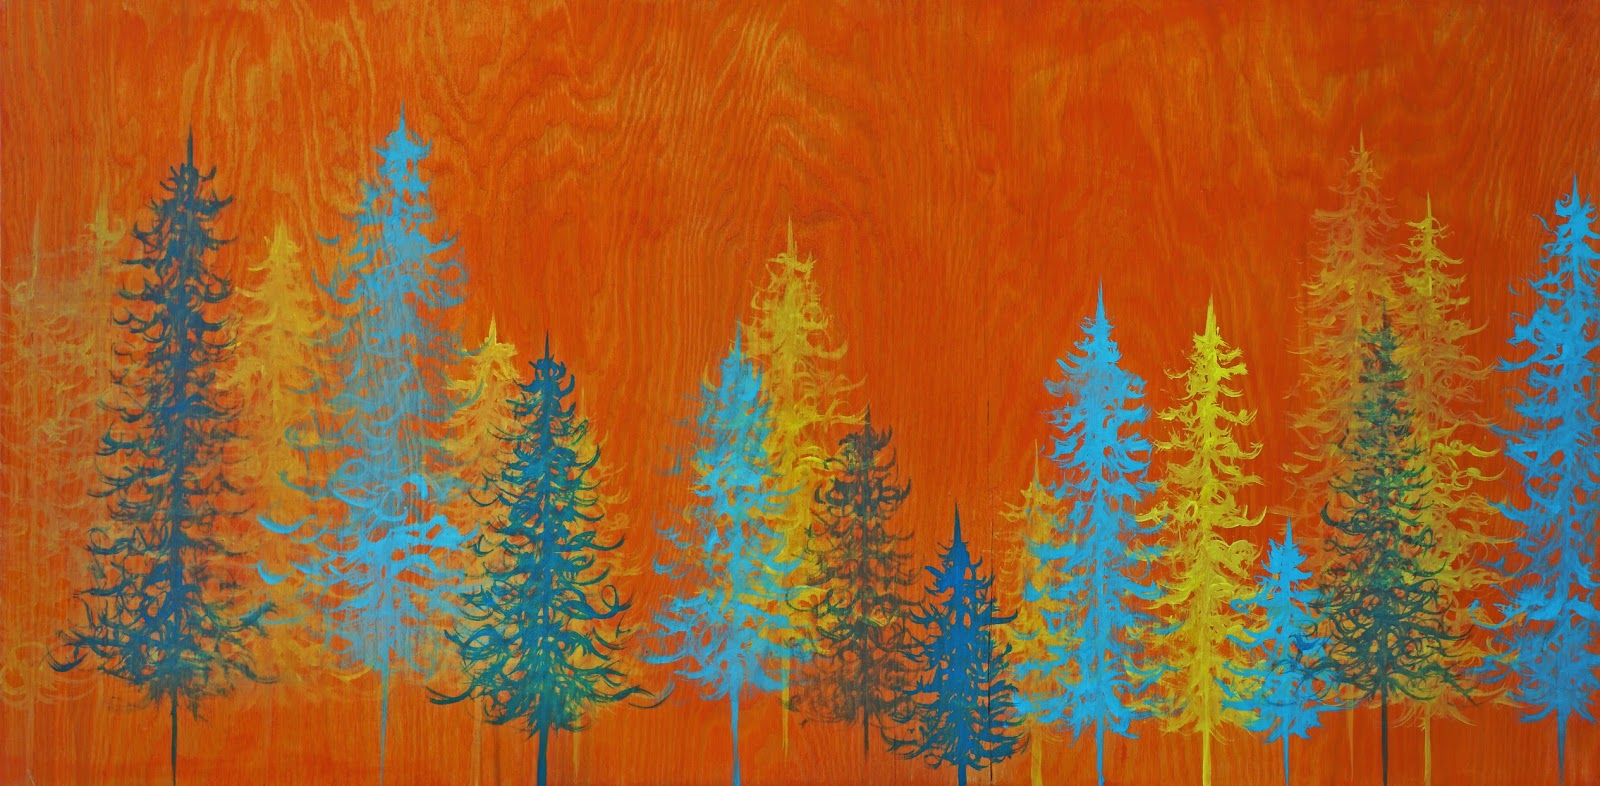 http://society6.com/emilymagone/orange-trees-on-woodpanel_print#1=45